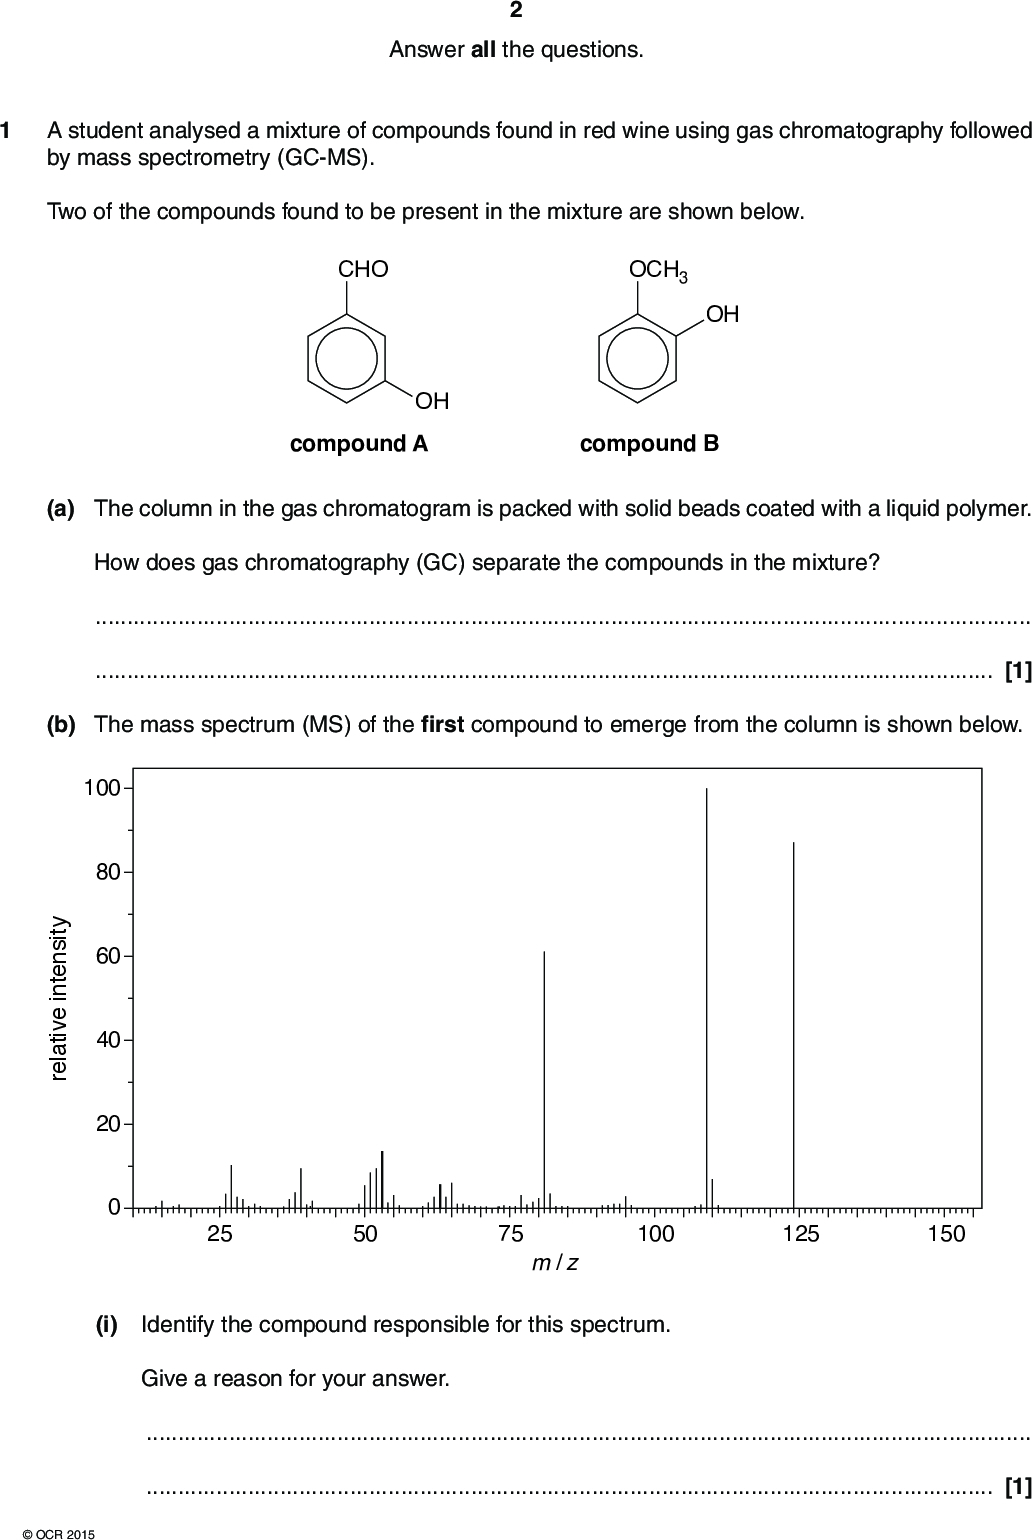 Answer all the questions. 1 A student analysed a mixture of compounds found in red wine using gas chromatography followed by mass spectrometry (GC-MS). Two of the compounds found to be present in the mixture are shown below. CHO OH OCH3 OH compound A compound B (a) The column in the gas chromatogram is packed with solid beads coated with a liquid polymer. How does gas chromatography (GC) separate the compounds in the mixture?[1] (b) The mass spectrum (MS) of the first compound to emerge from the column is shown below. y t i s n e e v i t a e r 100 80 60 40 20 25 50 75 m / z 100 125 150 (i) Identify the compound responsible for this spectrum. Give a reason for your answer.[1]OCR 2015<br />  (ii) What does your answer to (b)(i) suggest about the interaction of this compound with the phases present in the column?[1] (c) In red wine, compound A slowly forms an ester. The formation of the ester can also be done in the laboratory, as shown in the flowchart below. Separate portions of compound A are used in the formation of the ester. (i) Complete the boxes in the flowchart below. CHO reagent(s) NaBH4 reaction 1 OH compound A CHO OH compound A COOH OH compound C ester [3] (ii) Give the mechanism to show the formation of compound C in reaction 1. Use curly arrows and relevant dipoles.OCR 2015 [3] Turn over<br />  (d) 1 mol of compound B reacts with 2 mol of bromine, Br2 by electrophilic substitution. OCH3 OH compound B Write a balanced equation for this reaction, showing clearly the structure of the organic compound. [1] [Total: 10]OCR 2015<br />